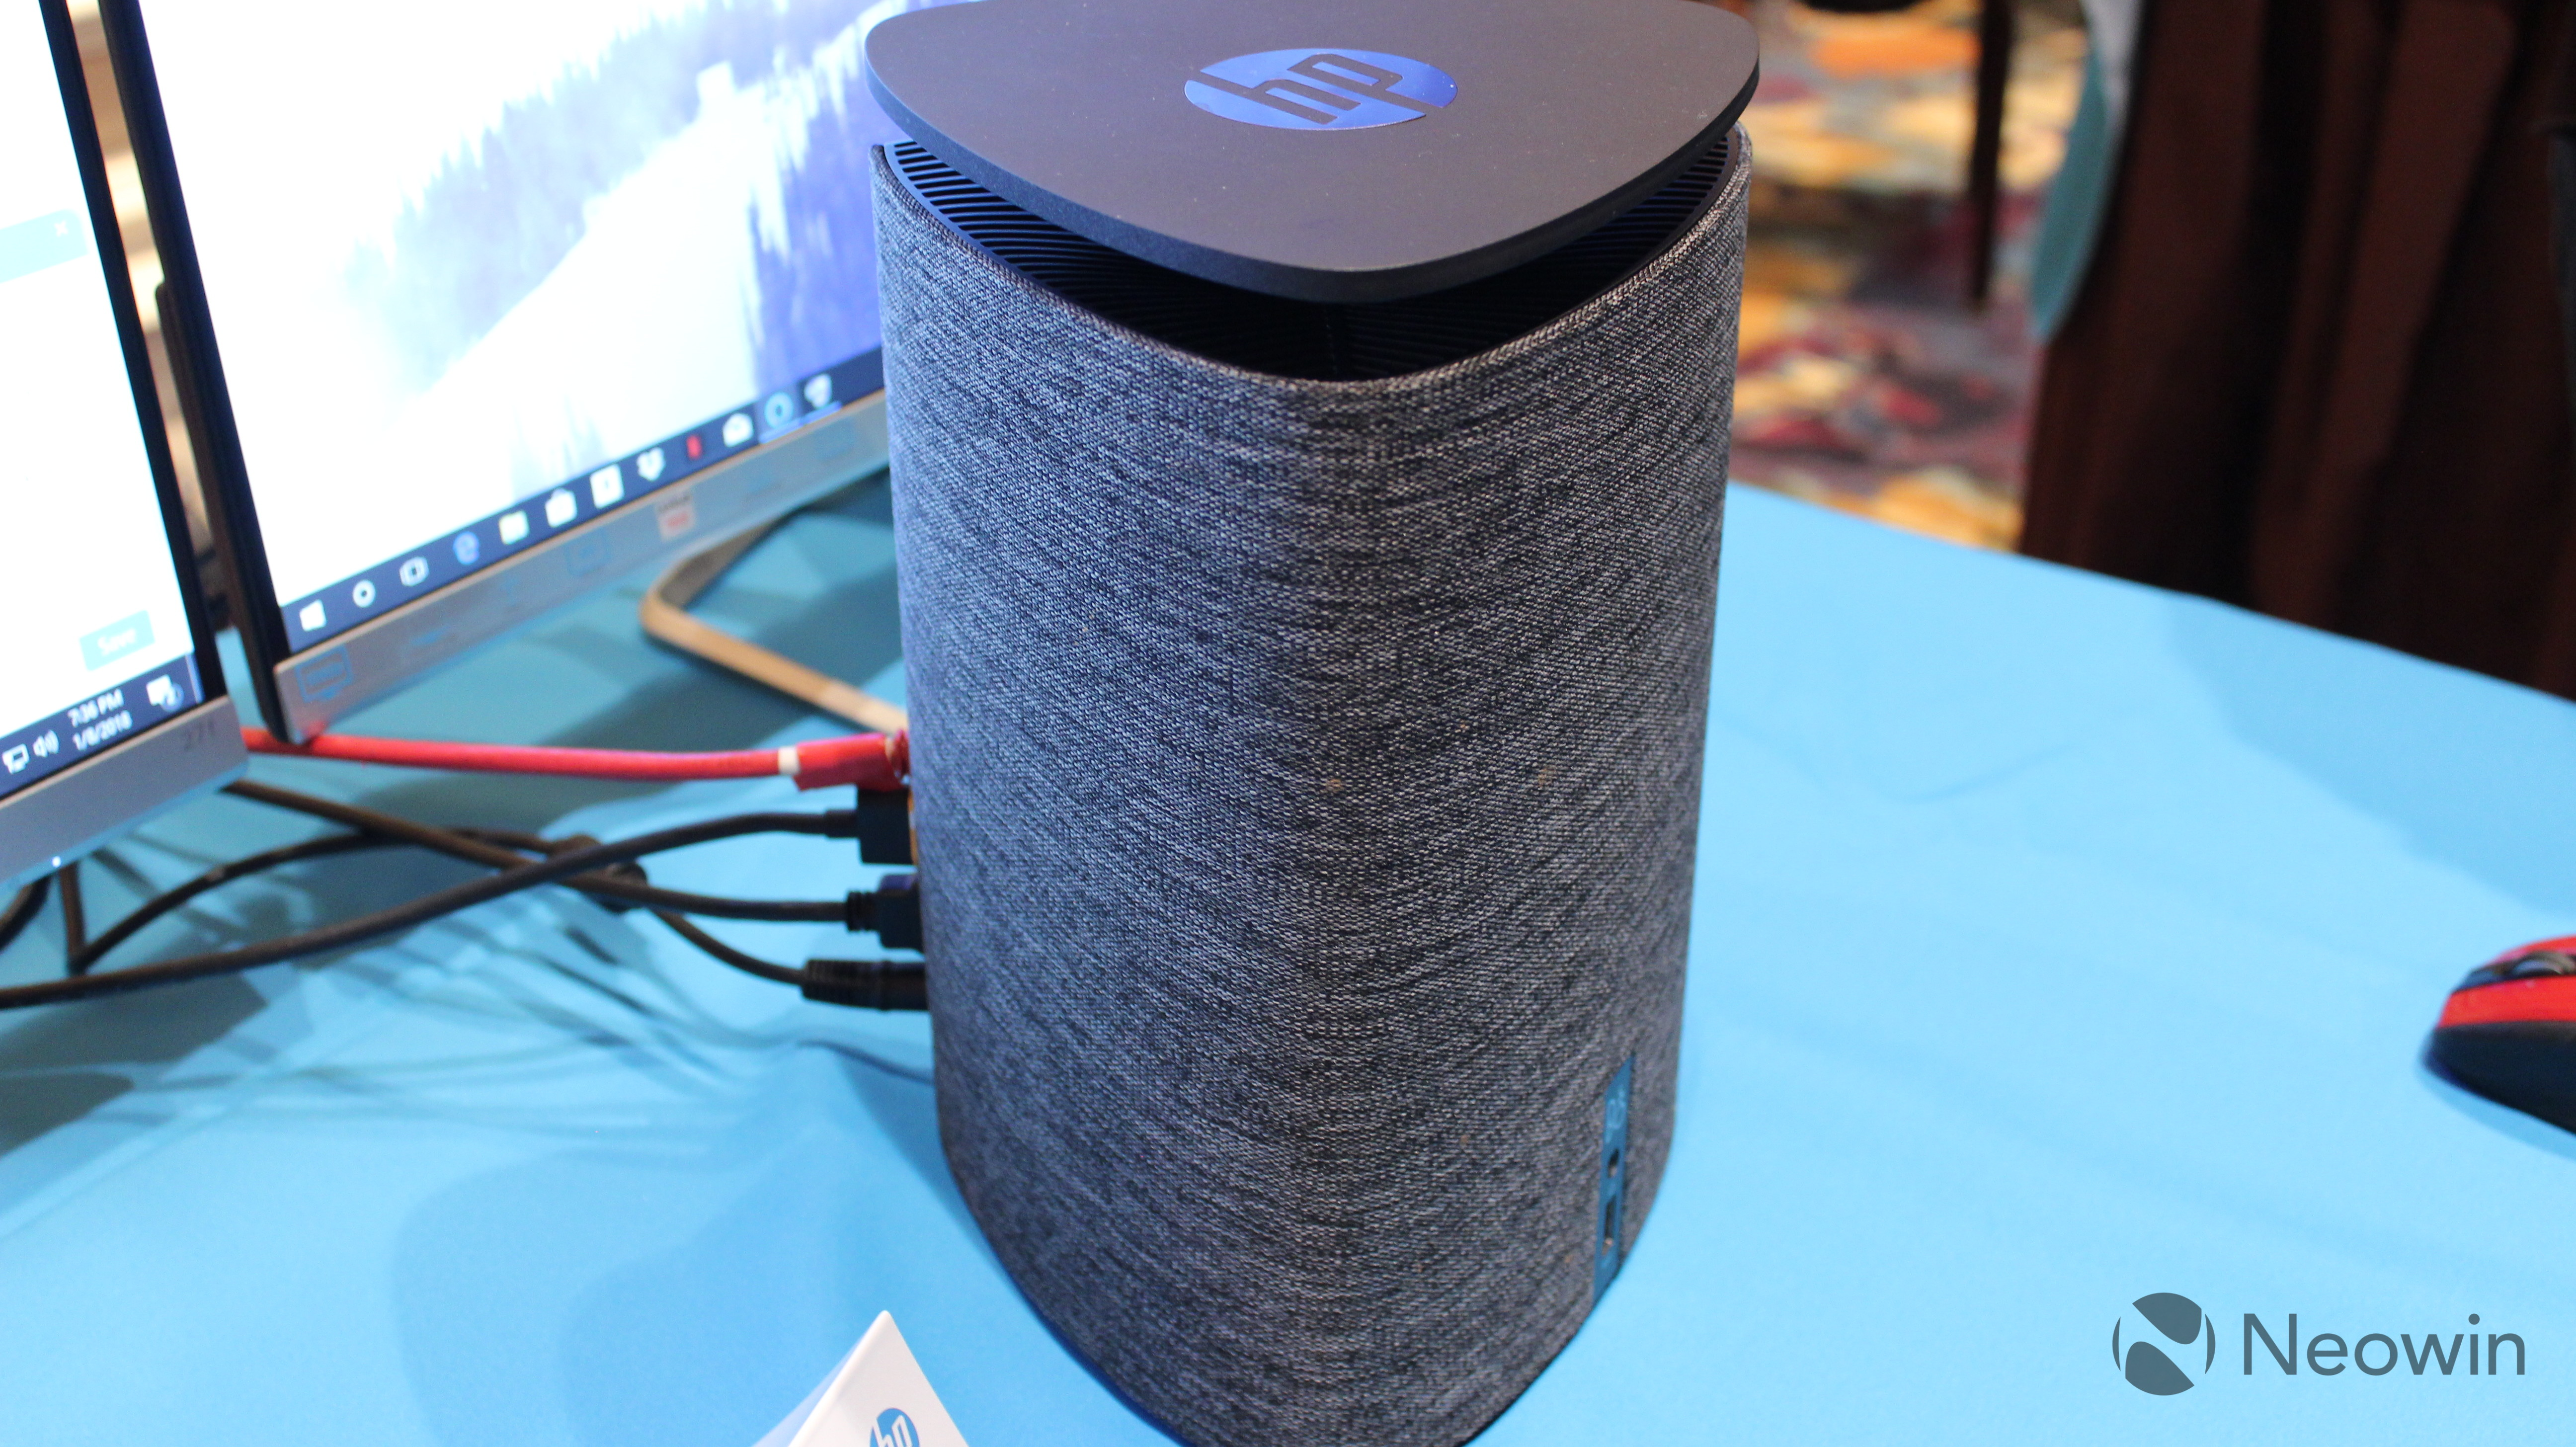 Hands on with Amazon Alexa on Windows 10 with HP's Pavilion